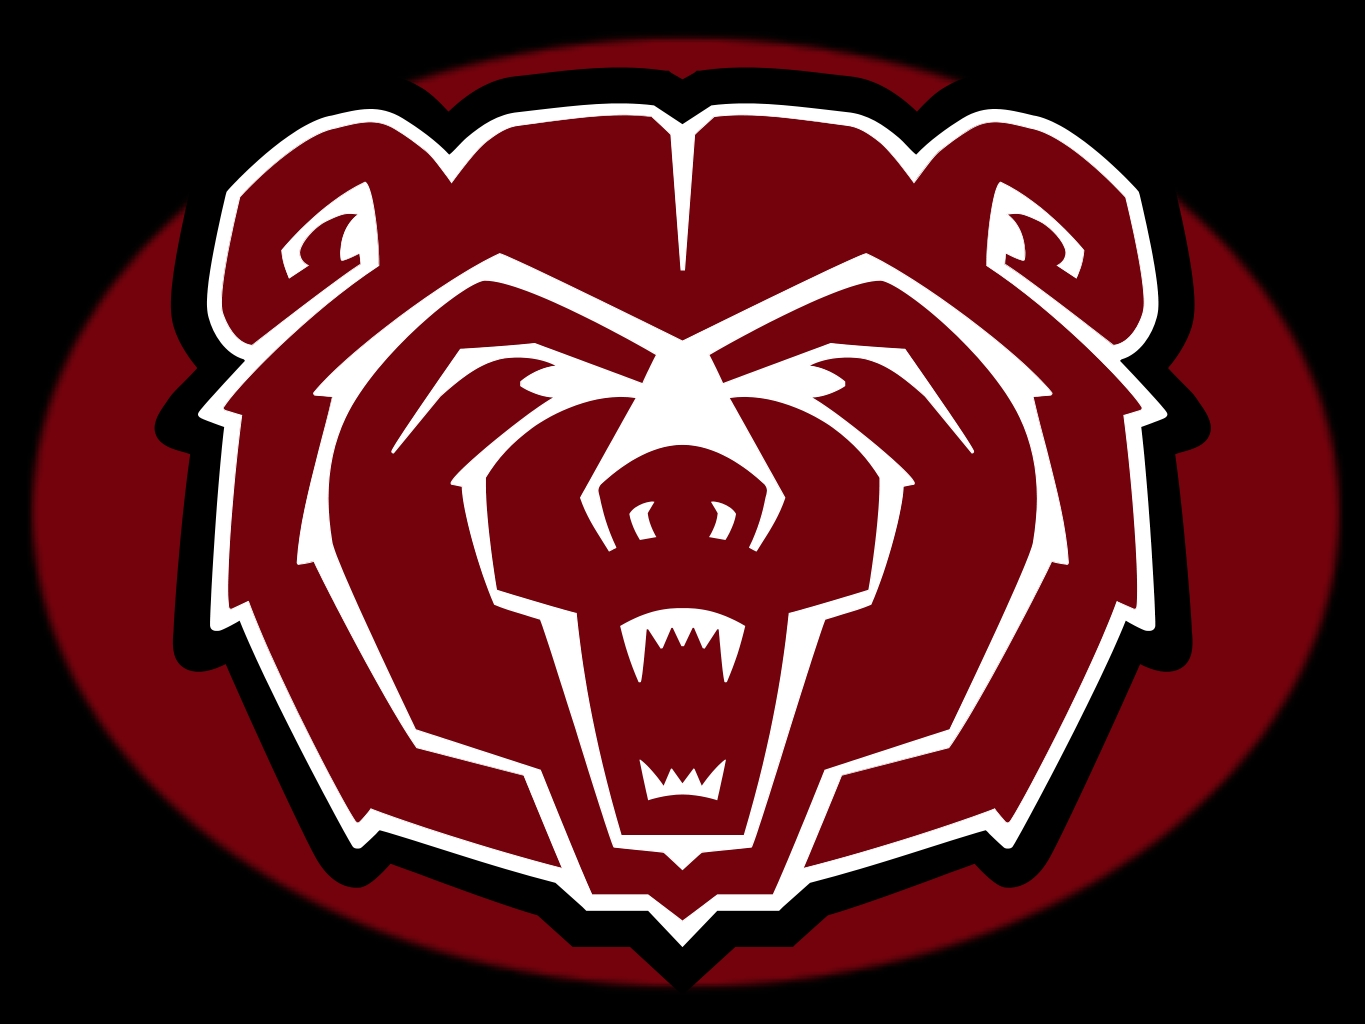 MSU Bears logo black